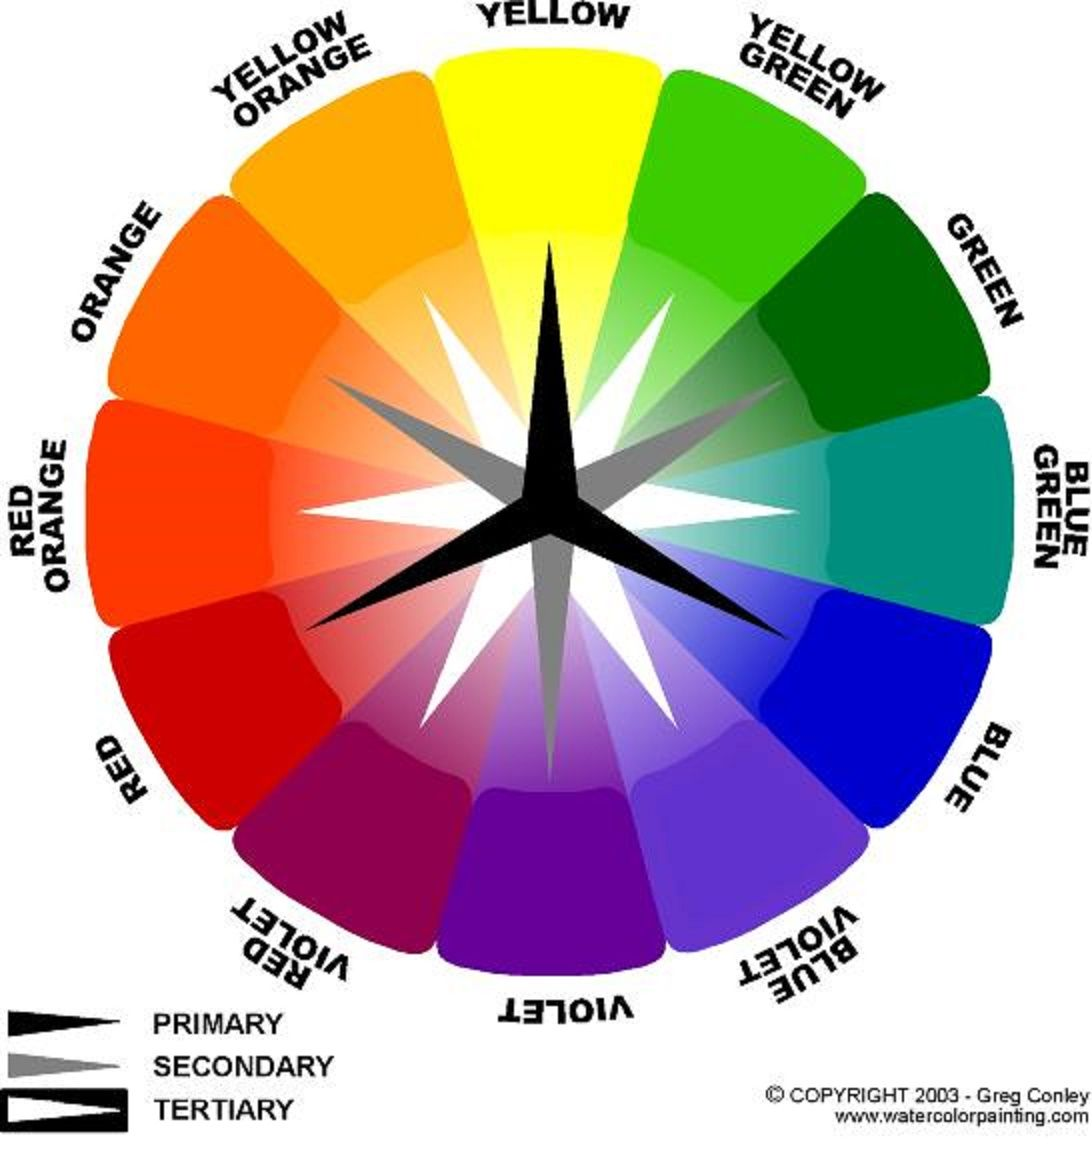 The Color Theory the color wheel the 12-part color wheel is a representation of the